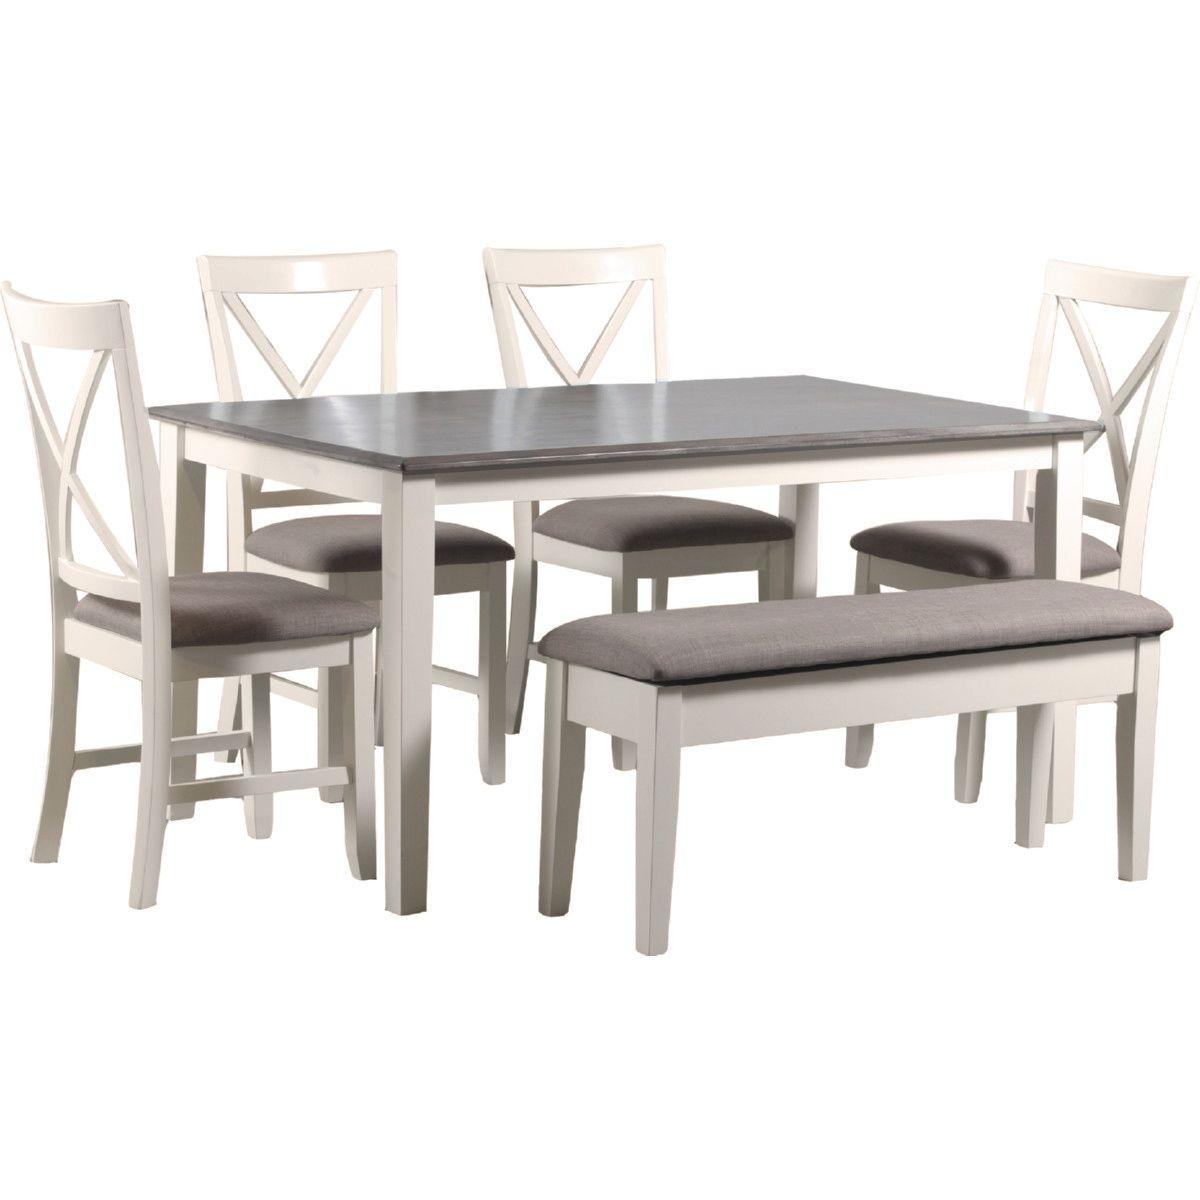 Powell 15d8153pc6 Jane 6 Piece Dining Set In Vanilla White Taupe Fabric Table Bench 4 Chairs Grey Dining Tables Grey Kitchen Table Kitchen Table Settings